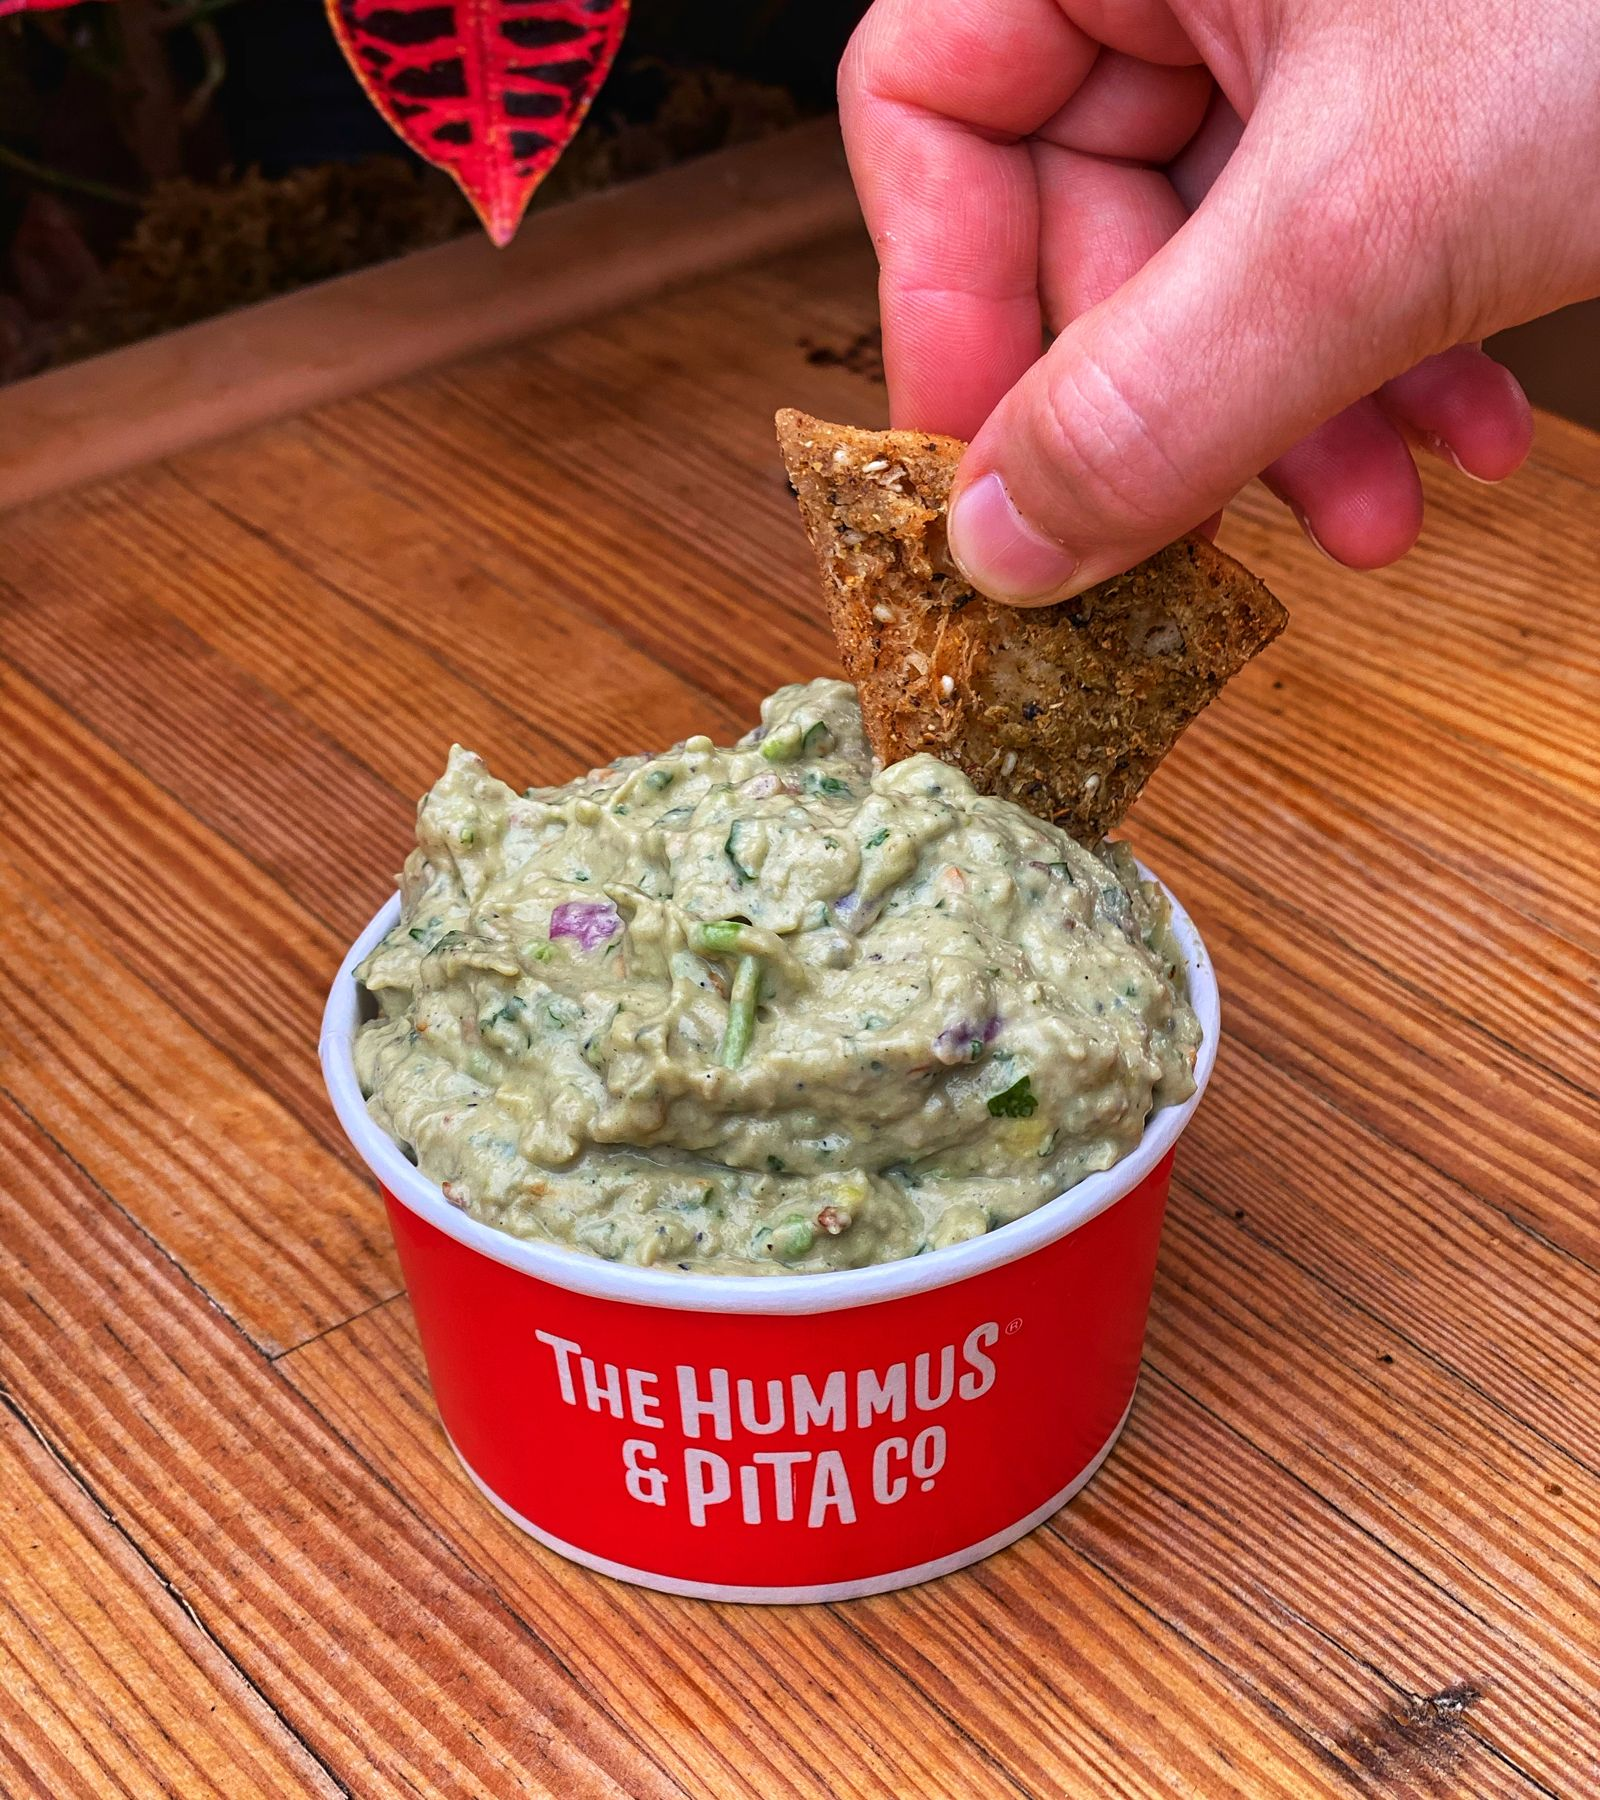 Fresh Mediterranean concept, The Hummus & Pita Co. further expands  its vegan offerings with four creative new dishes focused in health and wellness including Black Bean Hummus, AvoGanoush, Corfu Cauliflower Rice, and Vegan Gyro.